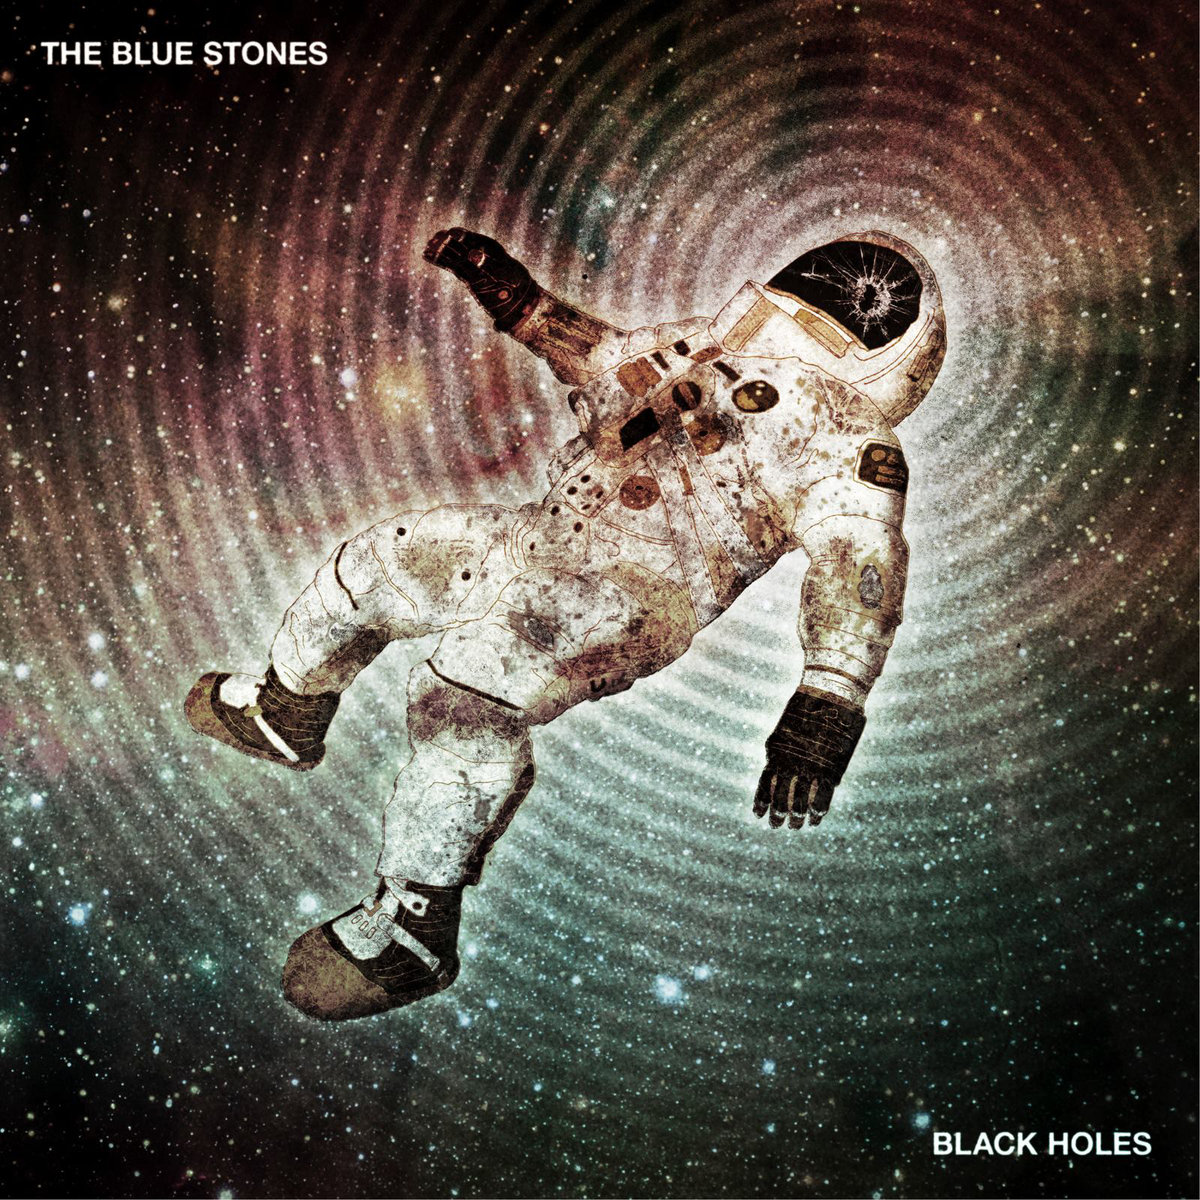 The Blue Stones - The Drop @ 'BLACK HOLES' album (alternative, blues)